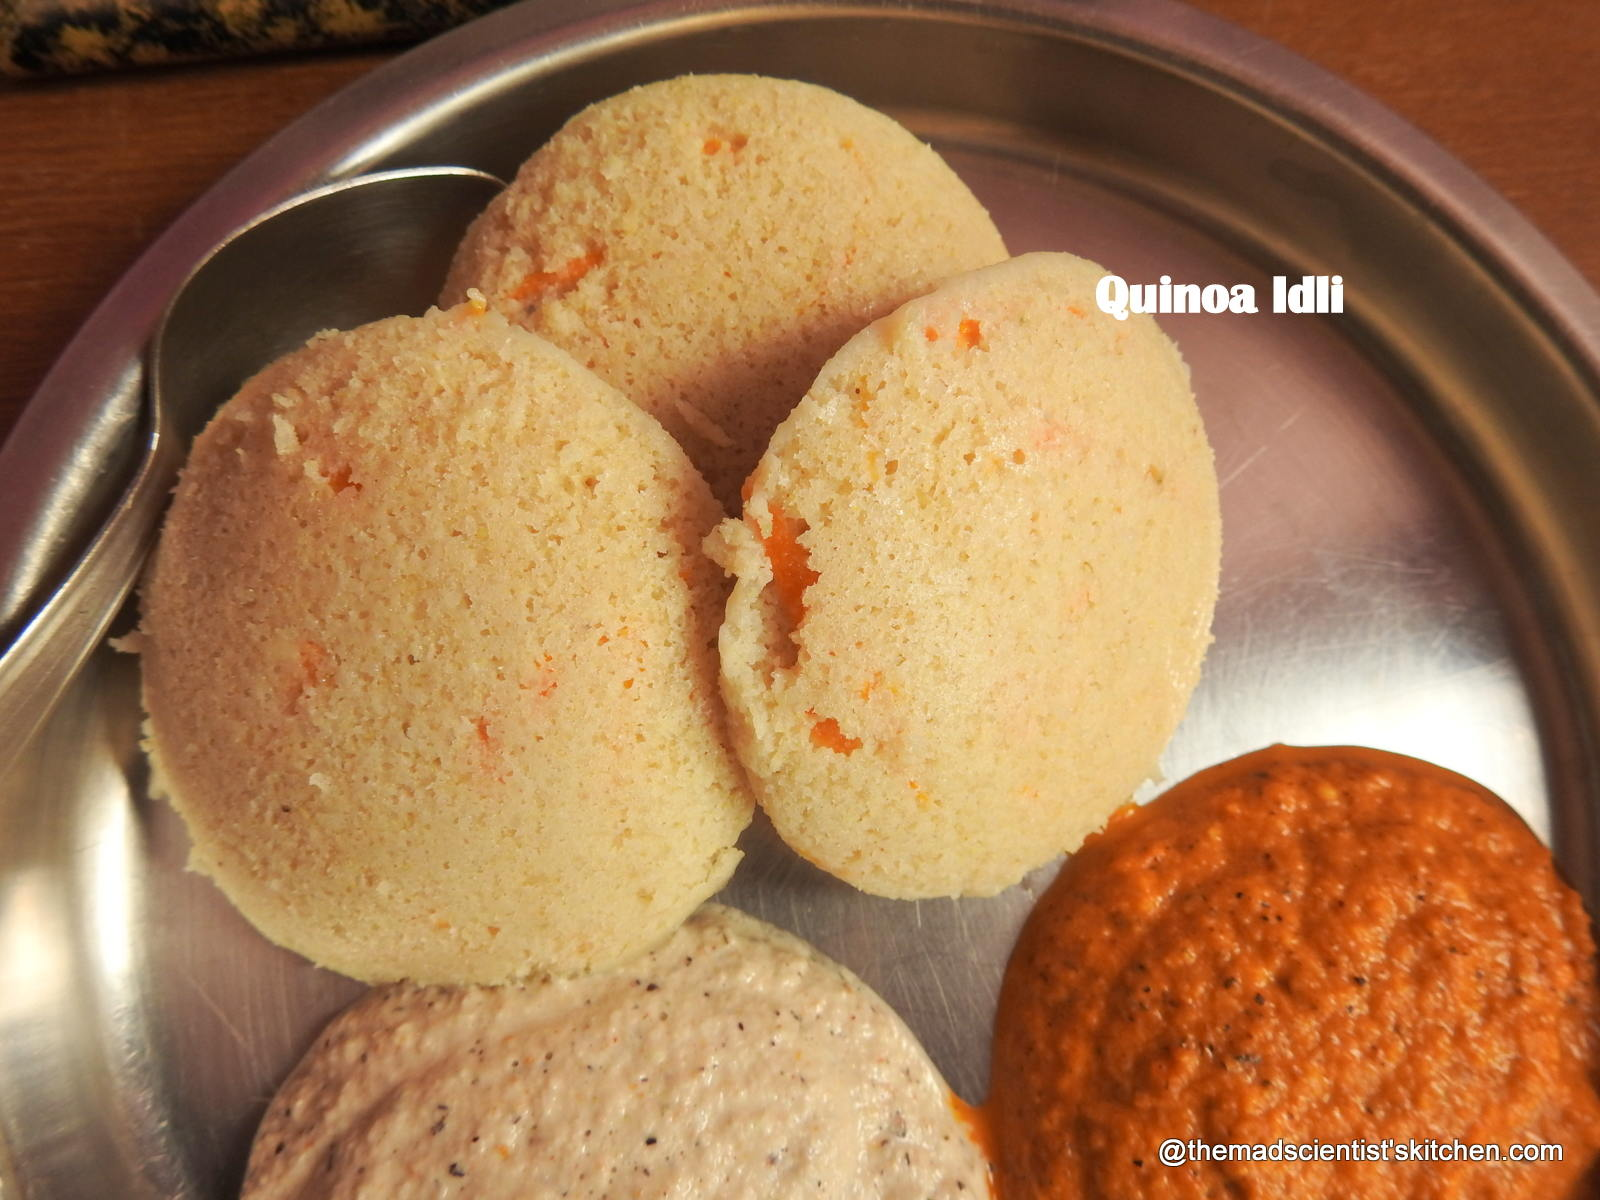 Spongy Quinoa Idli for a Healthy Breakfast